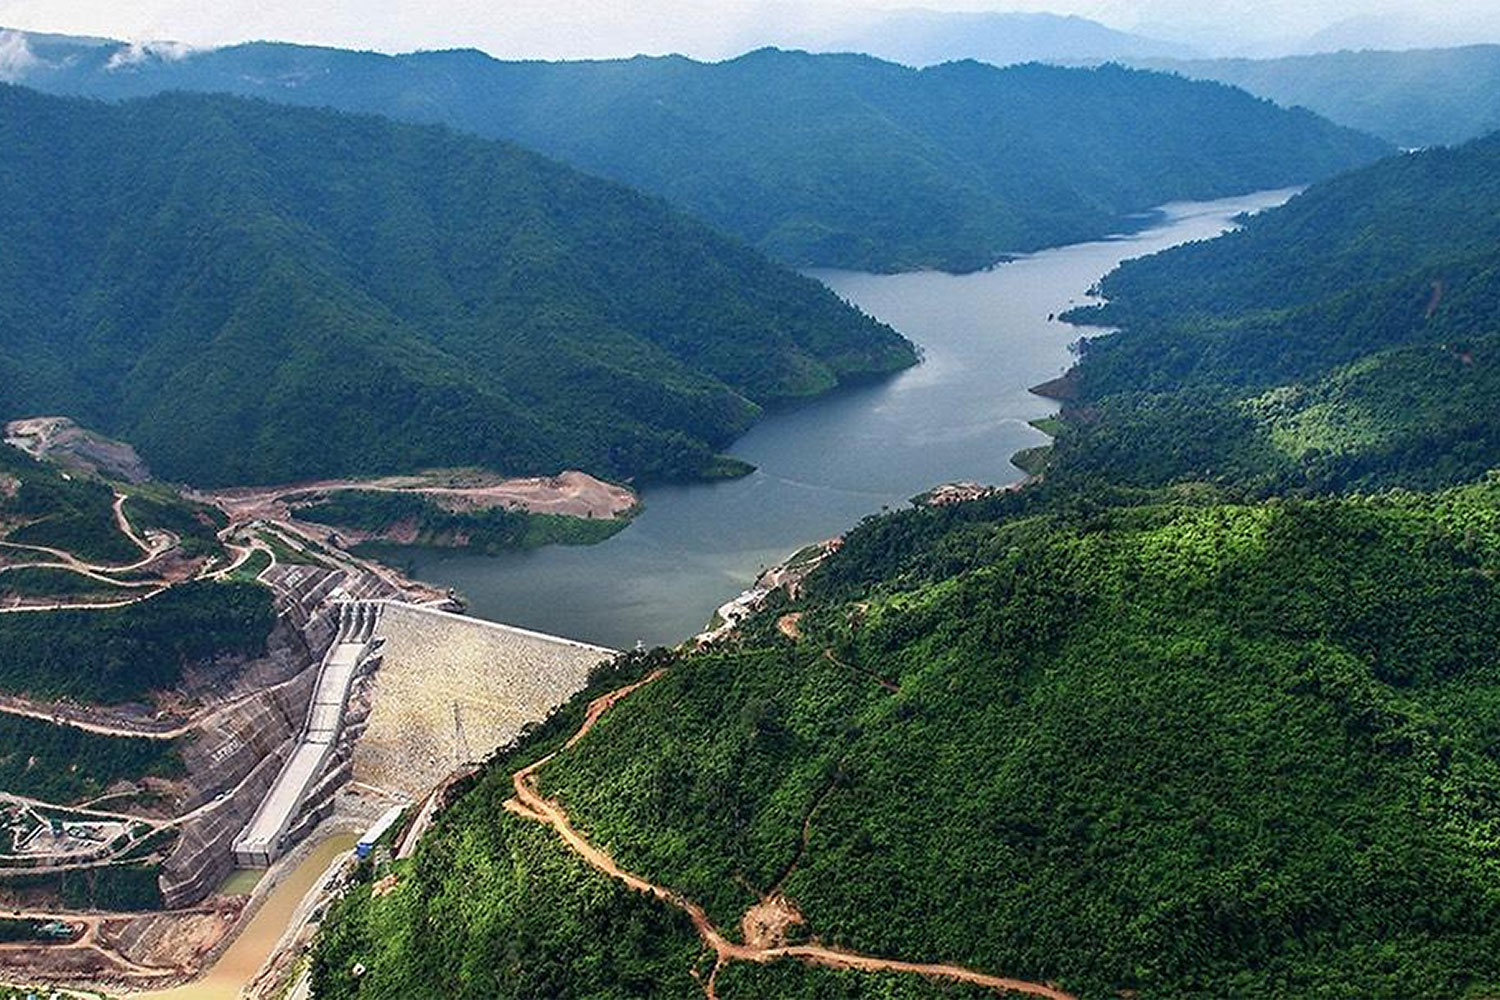 The Nam Ngum 2 hydroelectric plant has installed capacity of 615 megawatts.